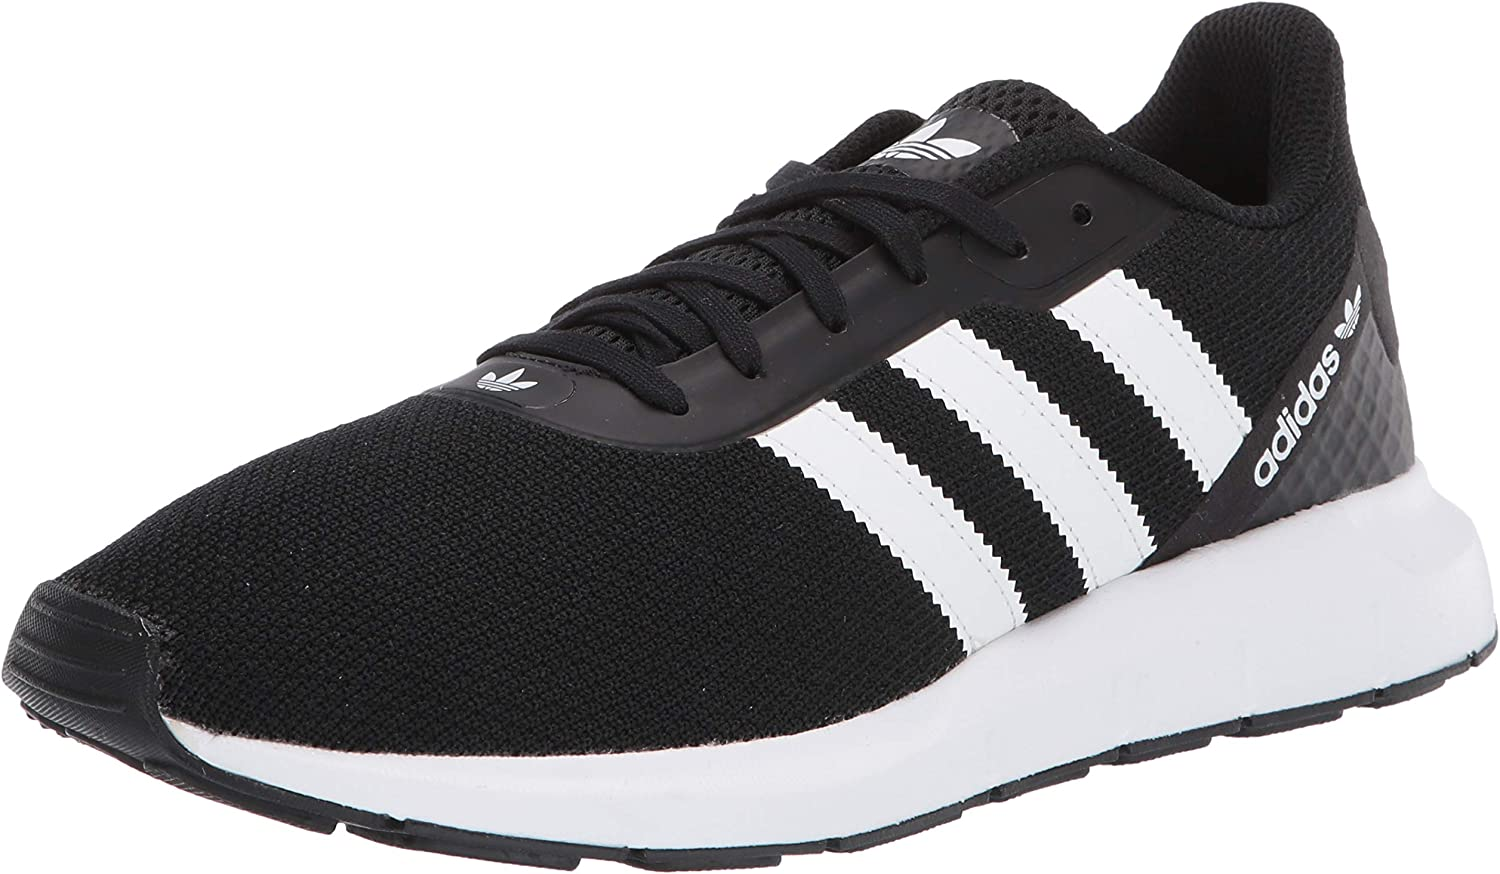 adidas Originals Swift Run RF J White//Black Textile Youth Trainers Shoes